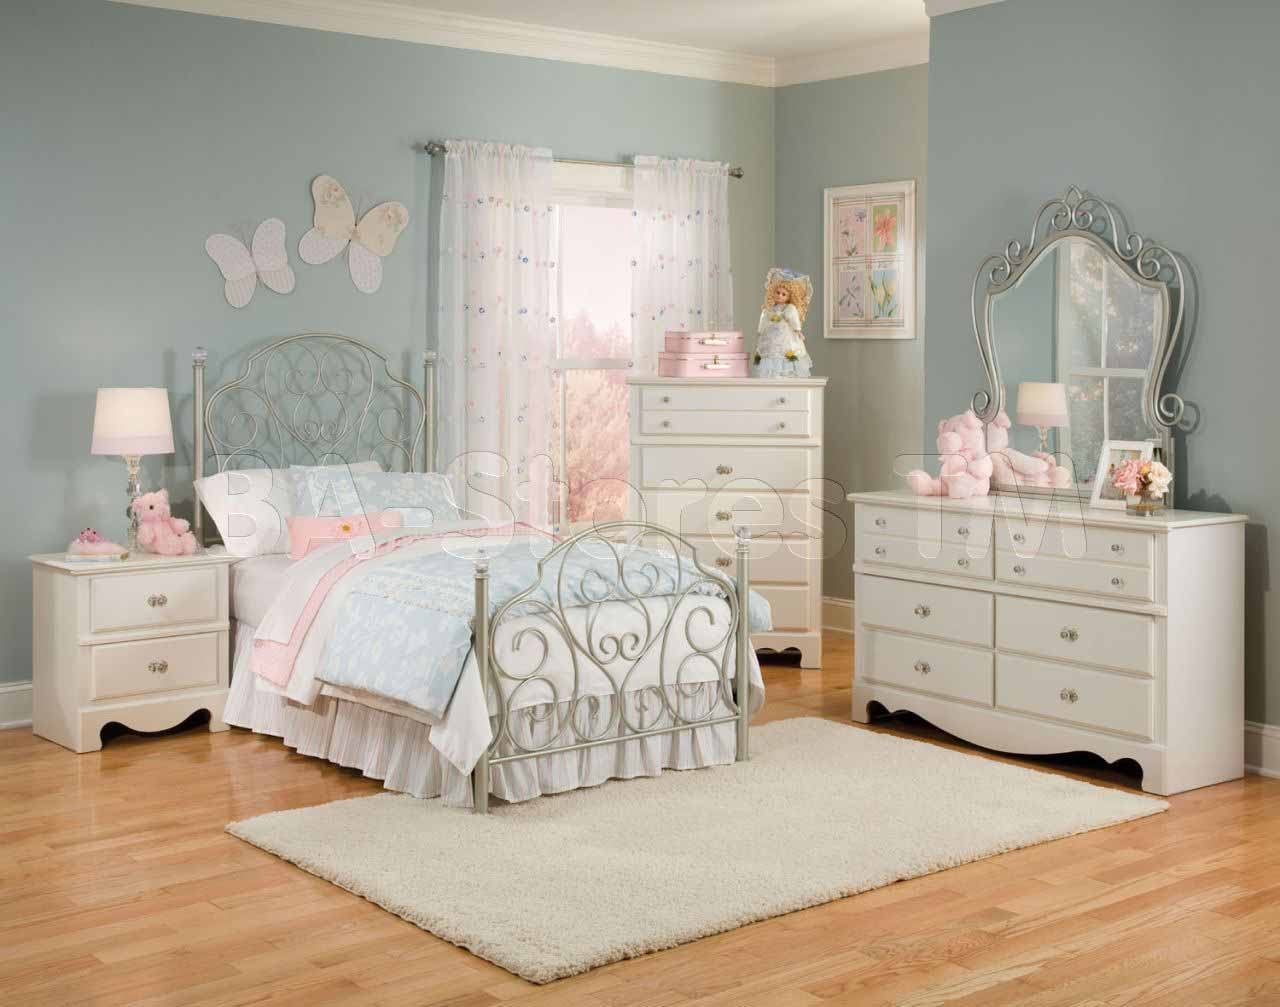 Pics Of Kids Rooms Kids Bedroom Wallpapers Hd Wallpapers Pics